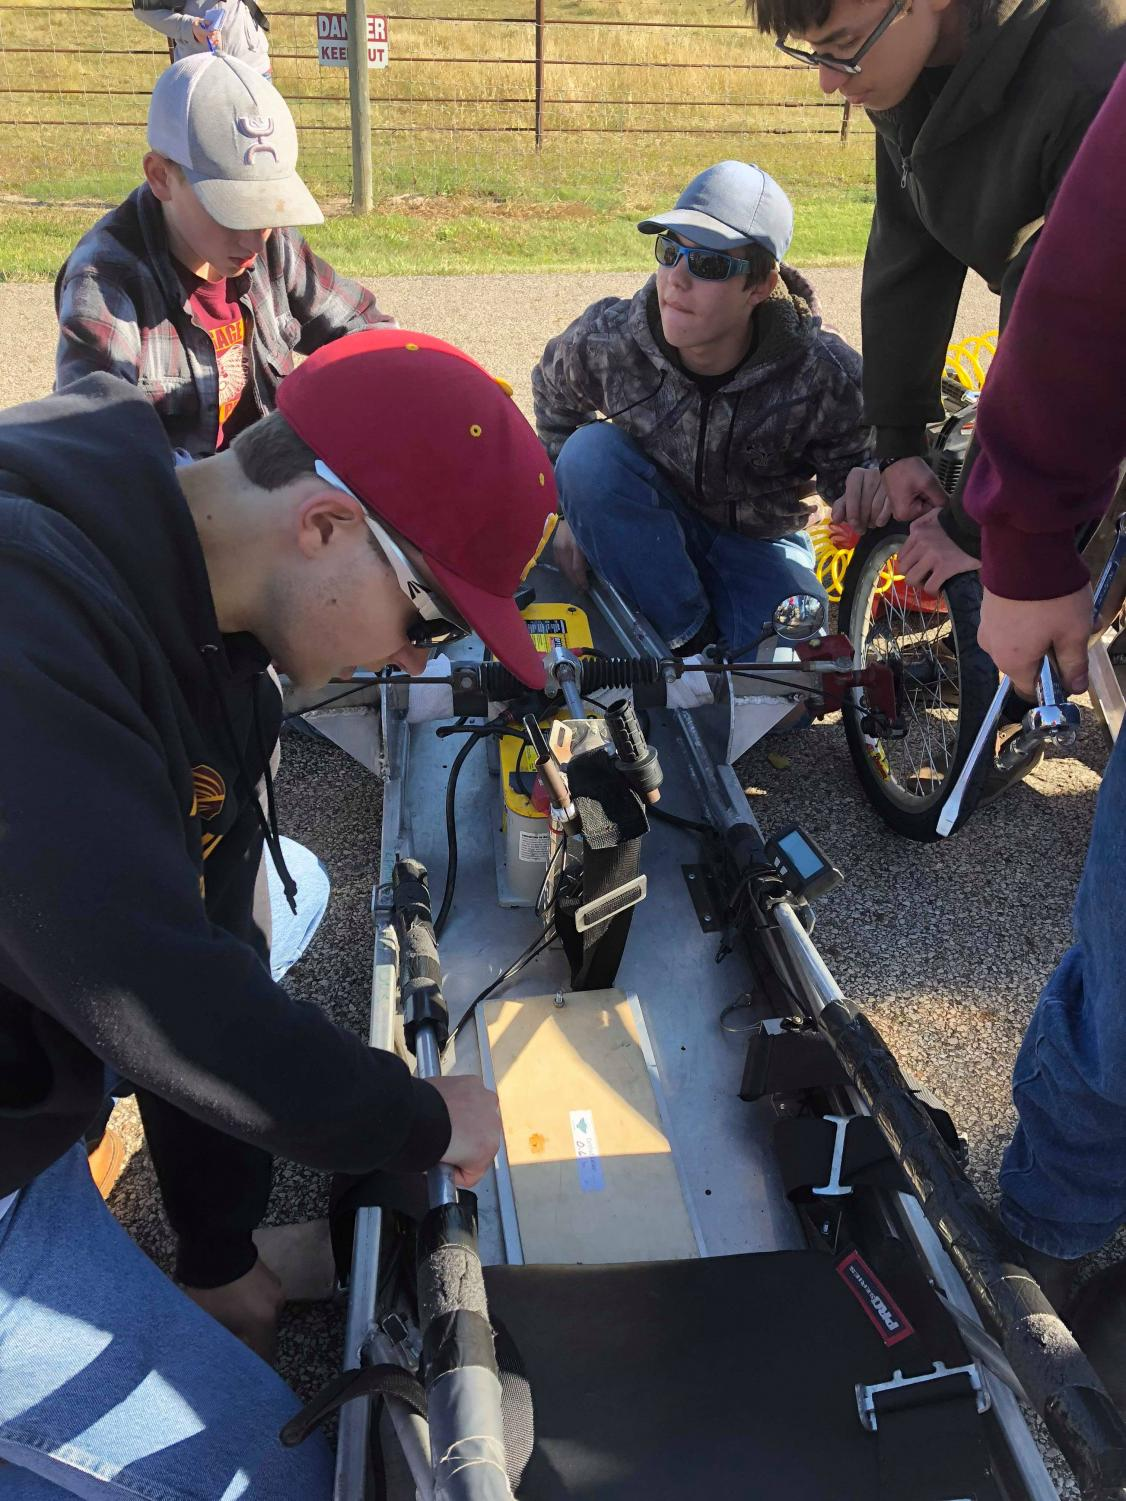 Junior Levi Hickert works on one of the cars at the Electro Rally. The rally was held September 27 at the Hays Municipal Park.